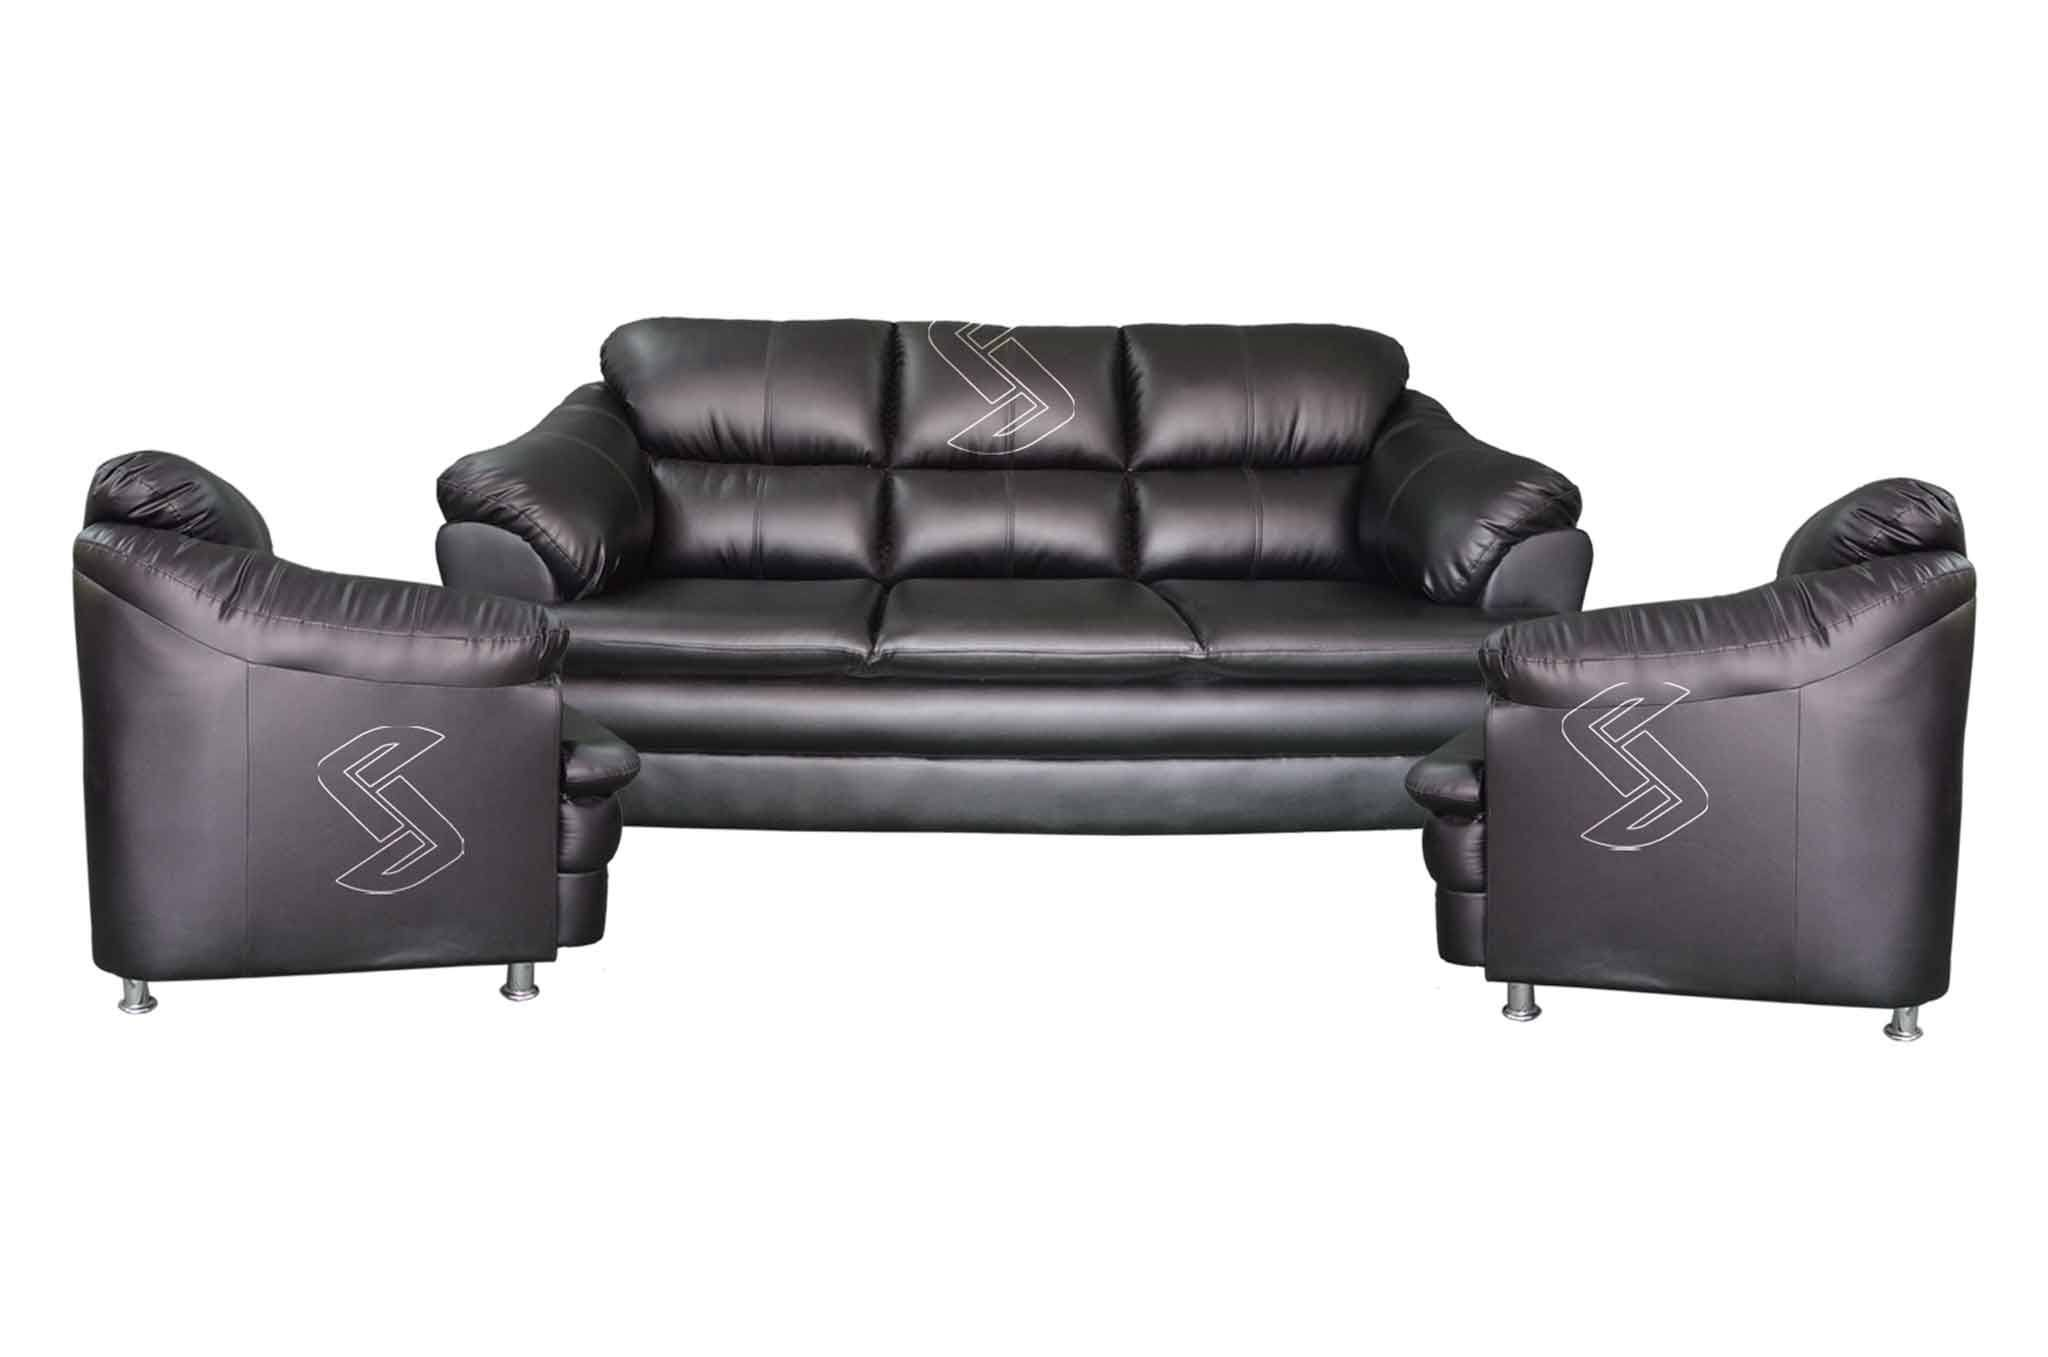 sofa sets at low price in hyderabad cara faux leather chesterfield monar set black online sanfurn leatherette 3 1